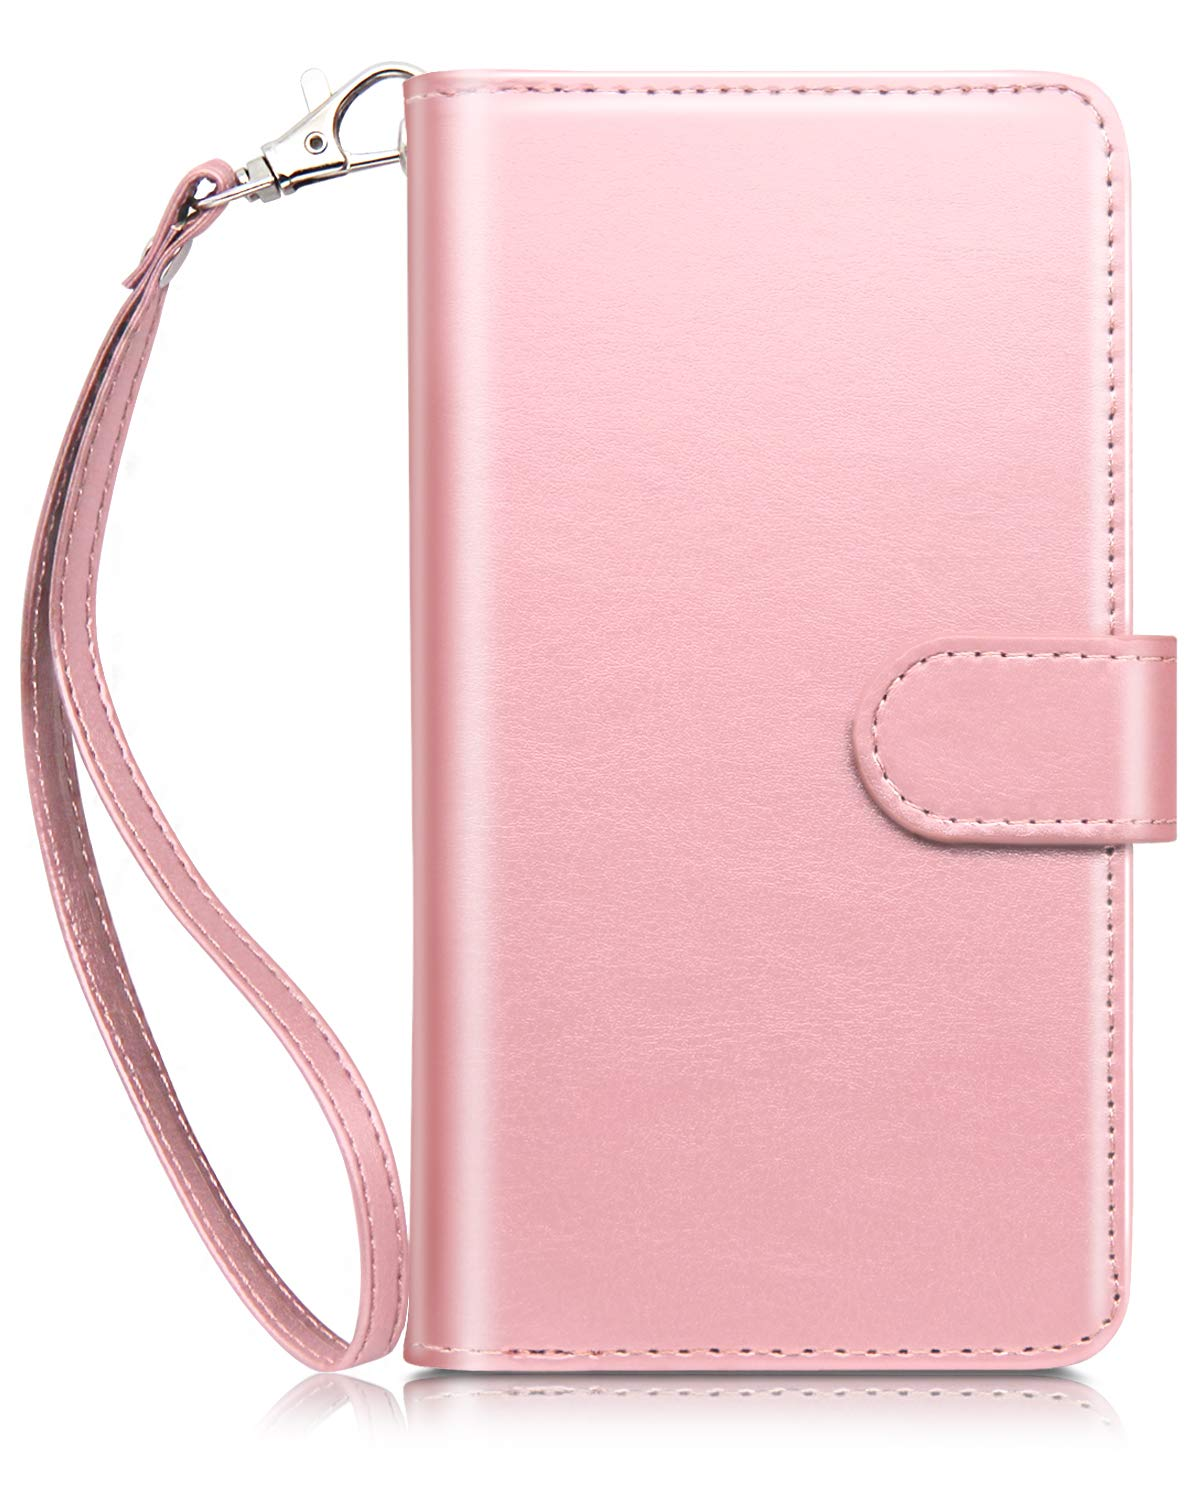 iPhone 8 Plus Case, iPhone 7 Plus Case, Dailylux iPhone 8 Plus Wallet Case Premium PU Leather TPU inner shell Flip Case With 9 Card Slot Shockproof Cover for iphone 8 Plus/7 Plus 5.5 inch Women/Girls-Rose Gold Flower